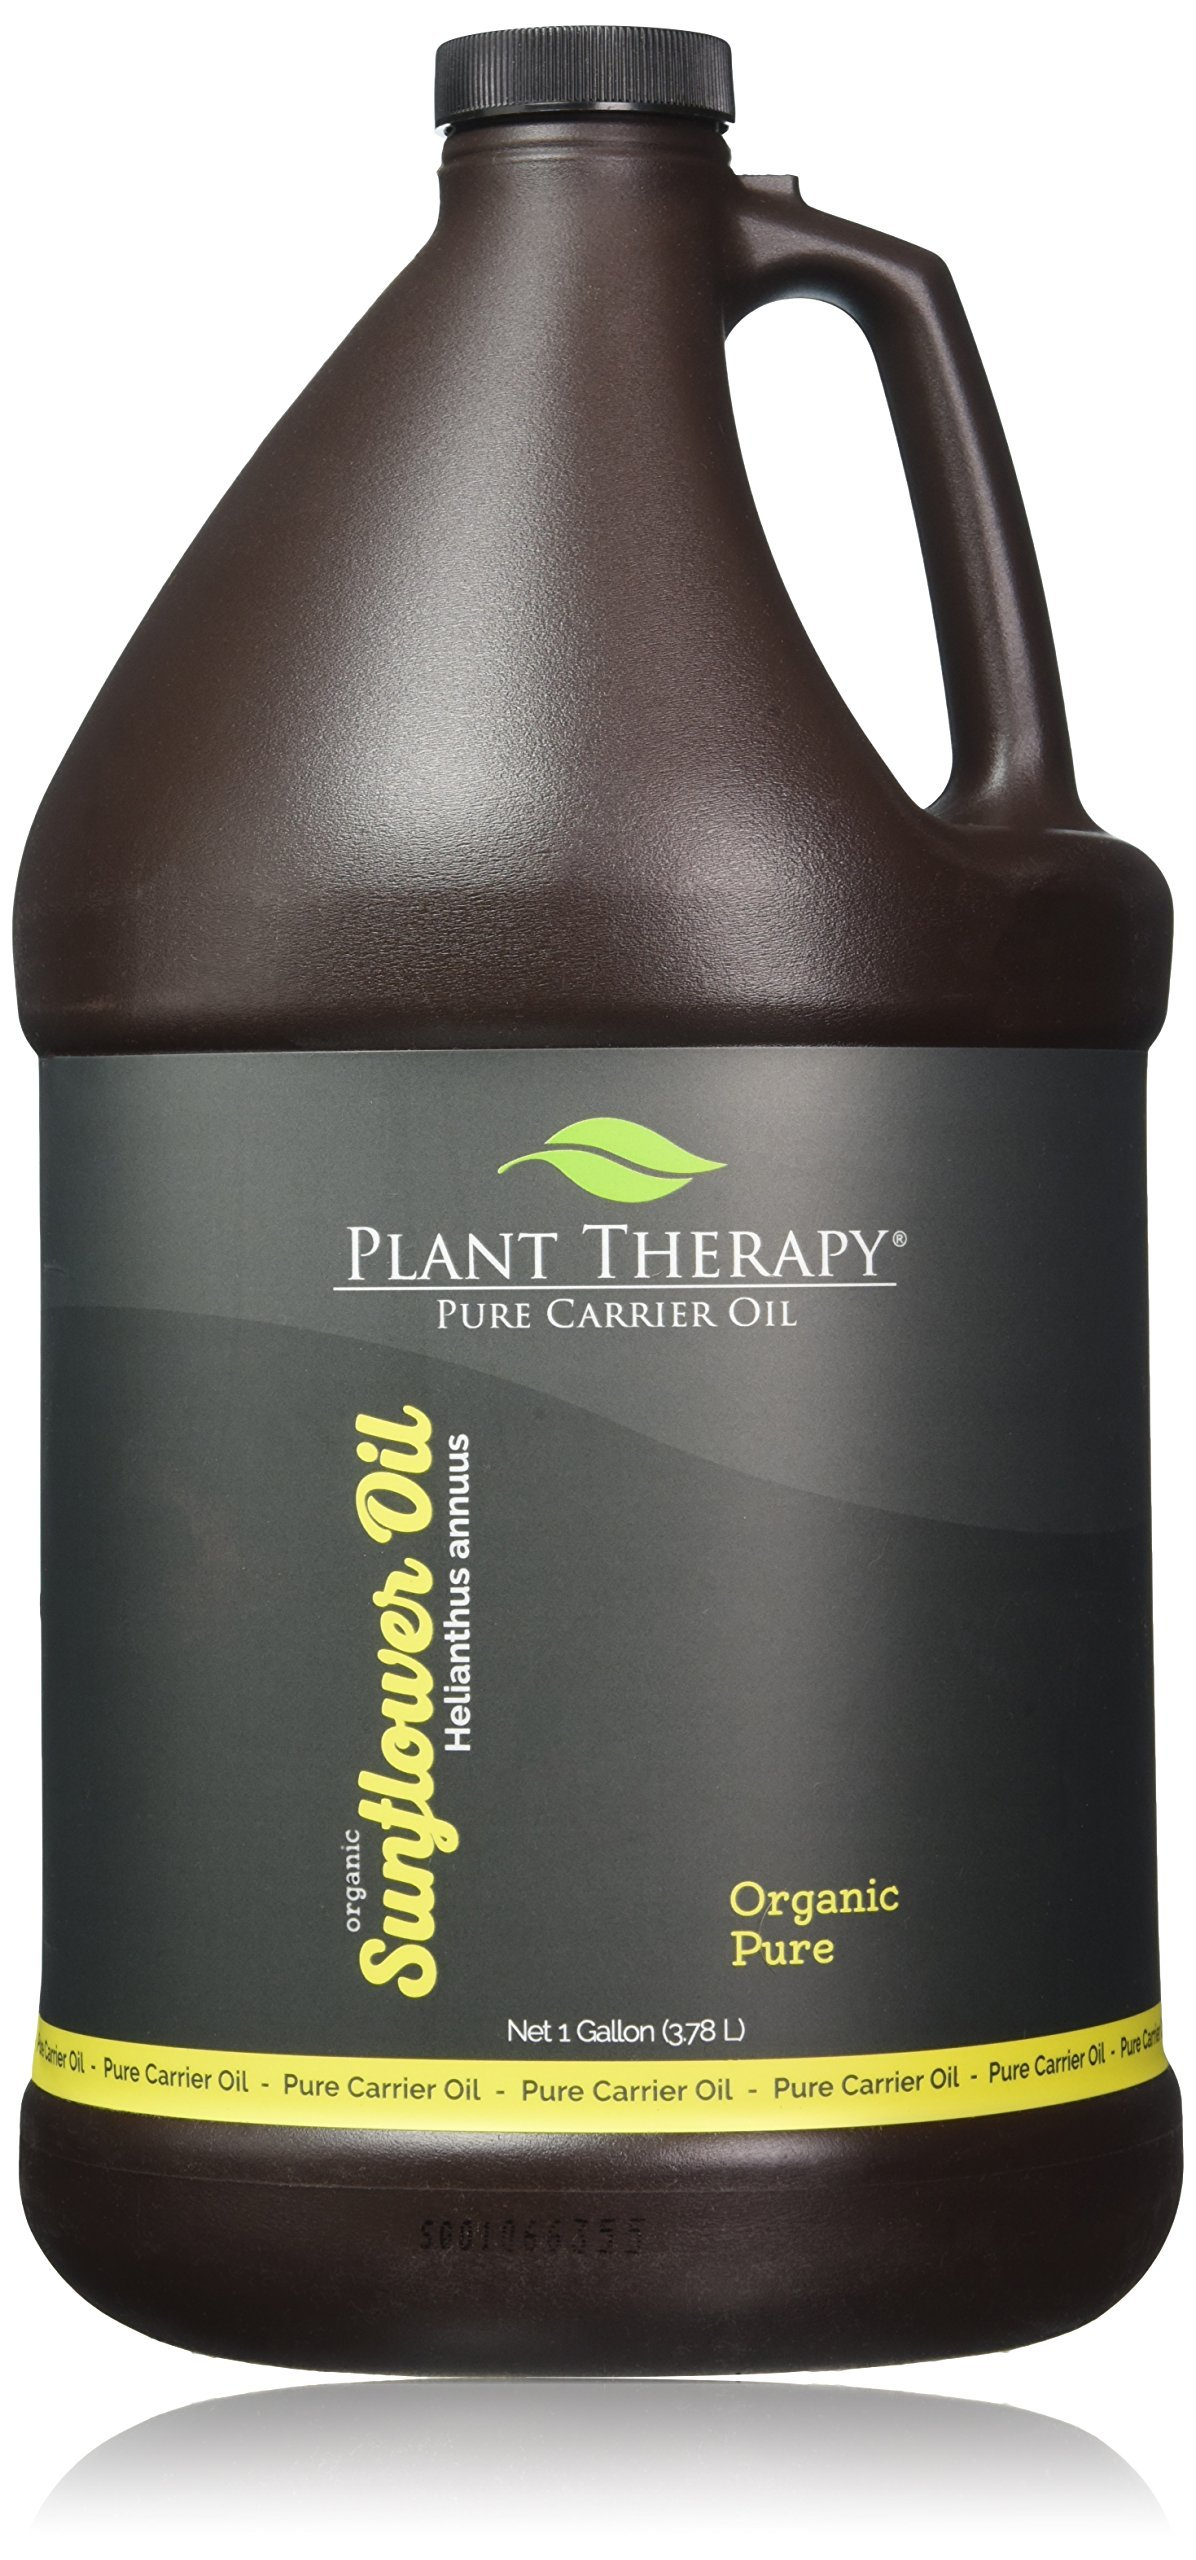 Plant Therapy Organic Sunflower Carrier Oil. A Base Oil for Aromatherapy, Essential Oil or Massage Use. 1 gal.